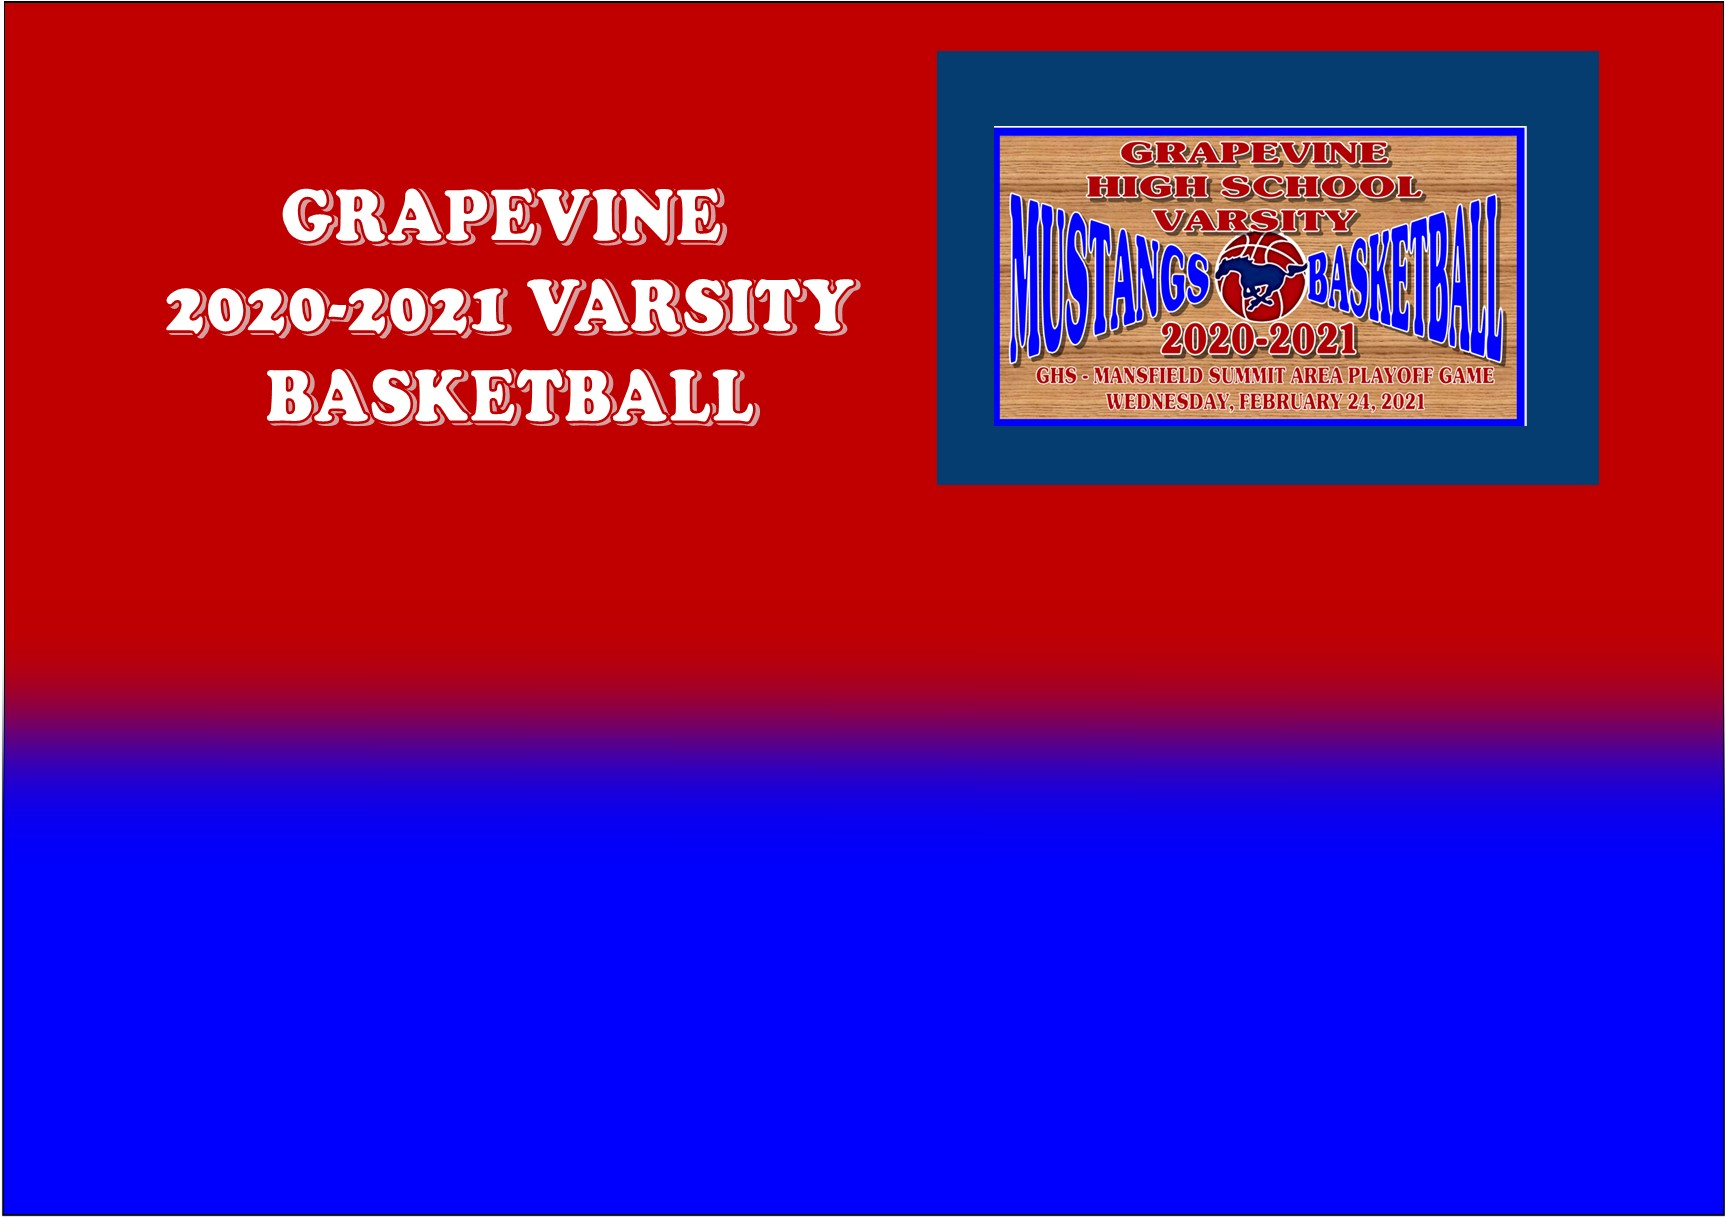 GCISD Basketball: Grapevine Mustangs End Playoffs with Loss to Mansfield Summit Jaguars 45-61